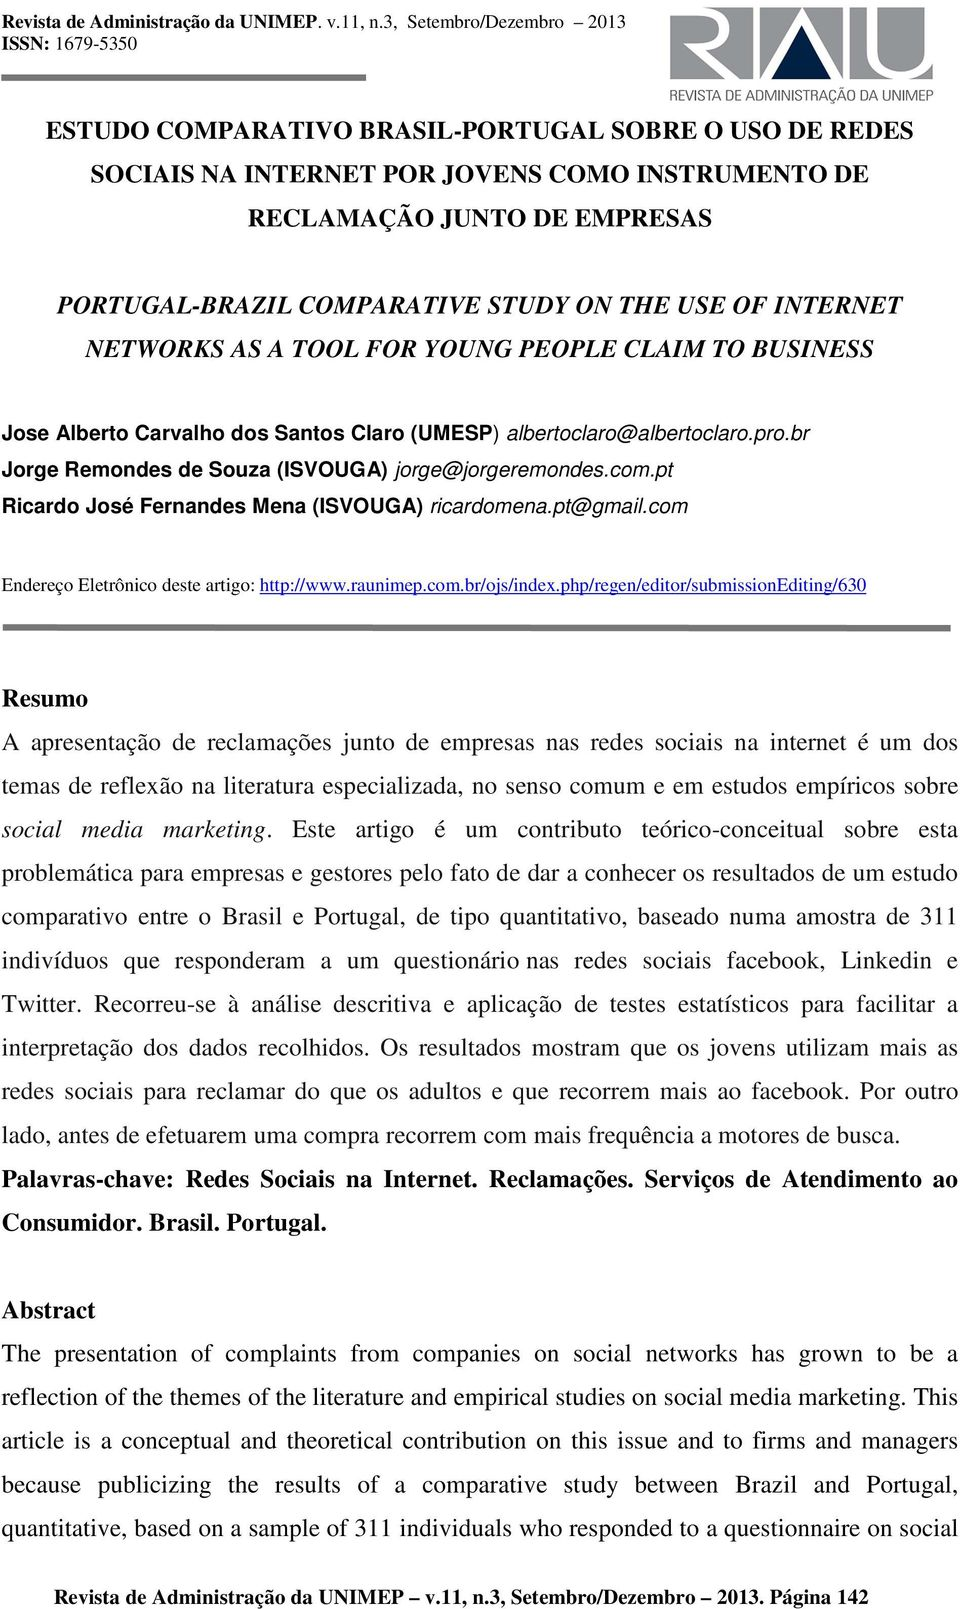 COMPARATIVE STUDY ON THE USE OF INTERNET NETWORKS AS A TOOL FOR YOUNG PEOPLE CLAIM TO BUSINESS Jose Alberto Carvalho dos Santos Claro (UMESP) albertoclaro@albertoclaro.pro.